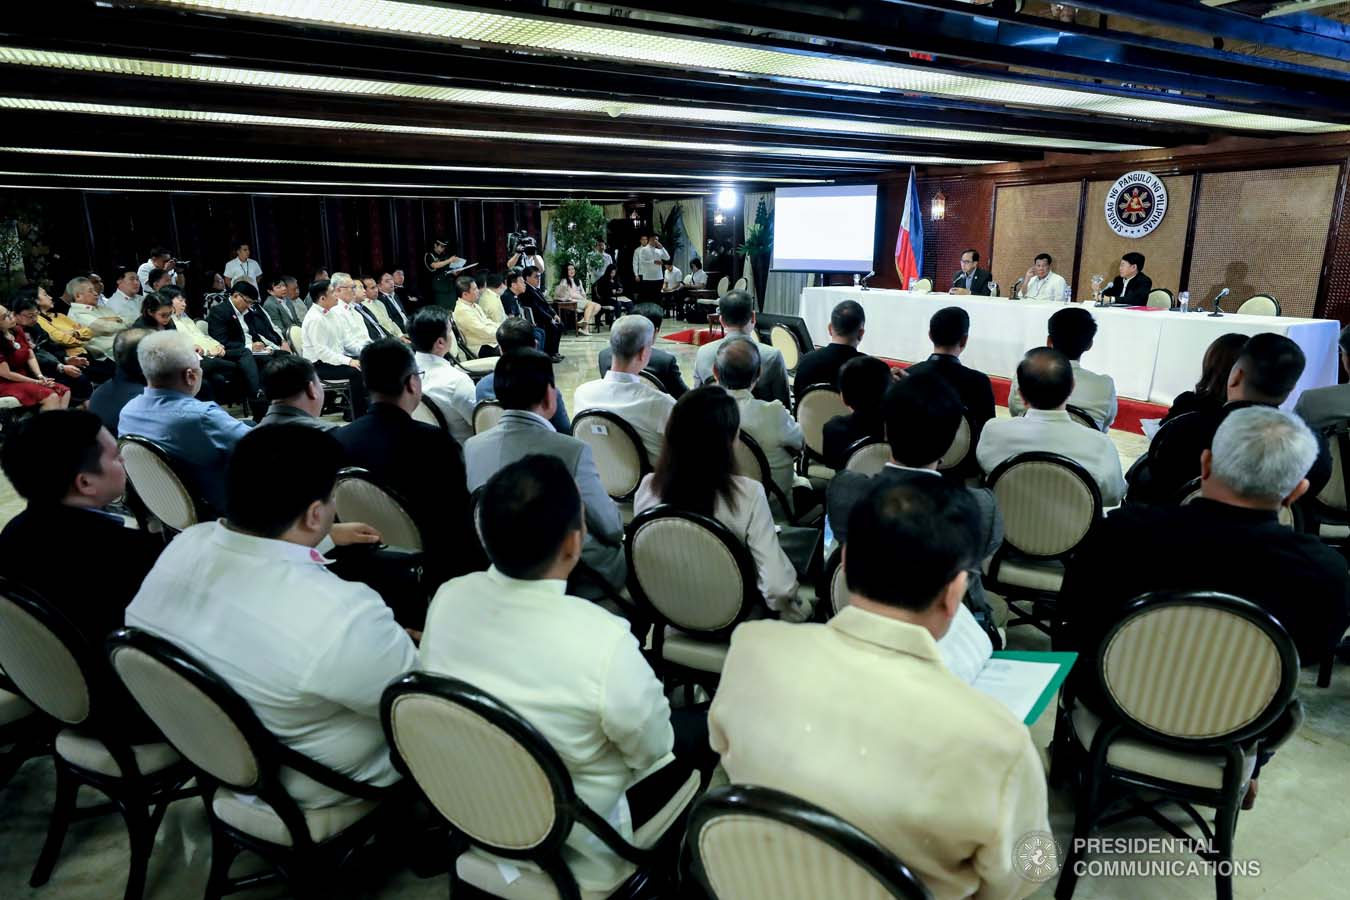 President Rodrigo Roa Duterte convenes with Agriculture Secretary William Dar, Interior and Local Government Secretary Eduardo Año and other officials to discuss the updates on the African Swine Fever during a meeting at the Malacañan Palace on February 25, 2020. RICHARD MADELO/PRESIDENTIAL PHOTO